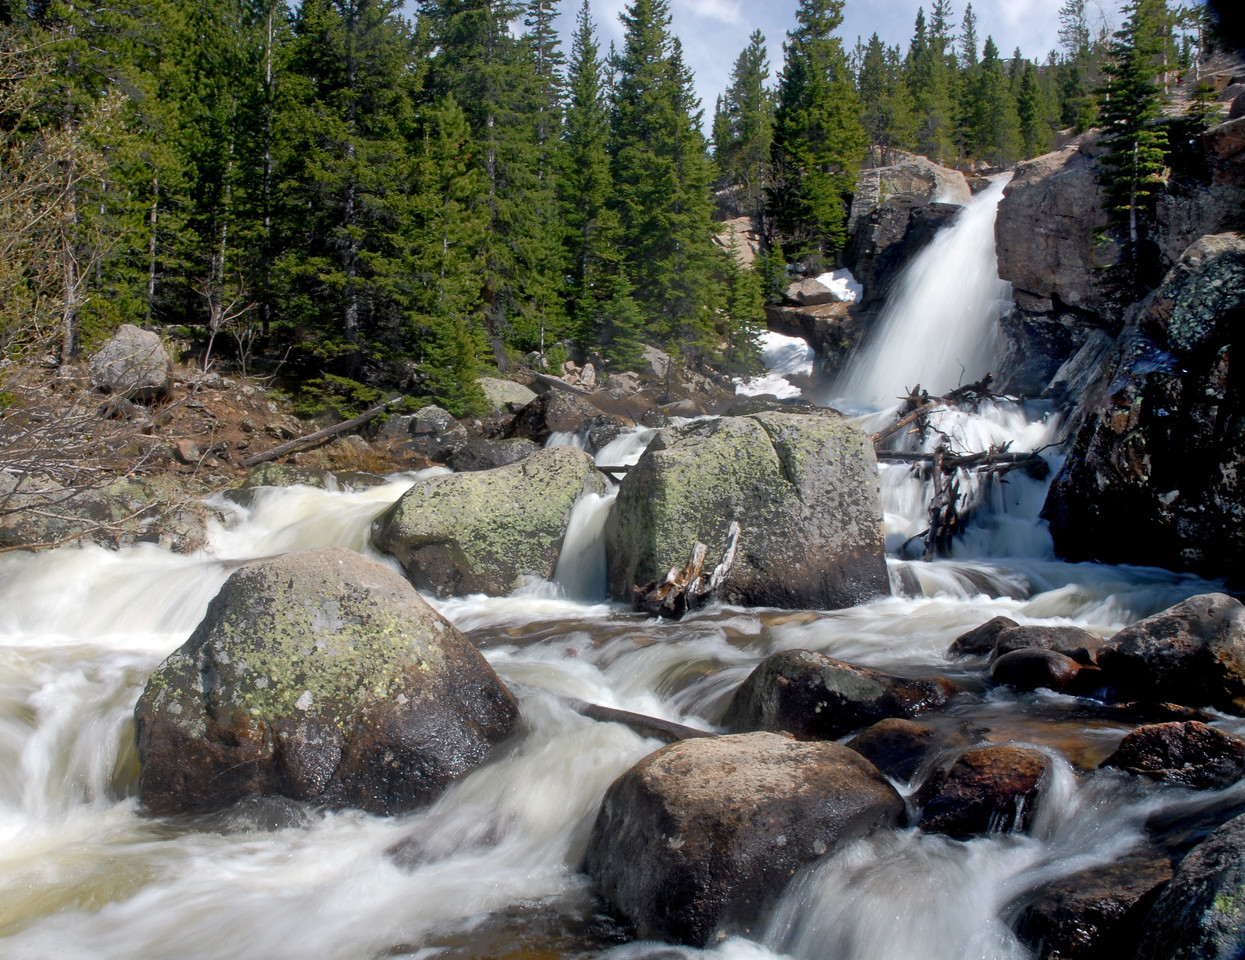 Alberta Falls roars with spring melt in early June.